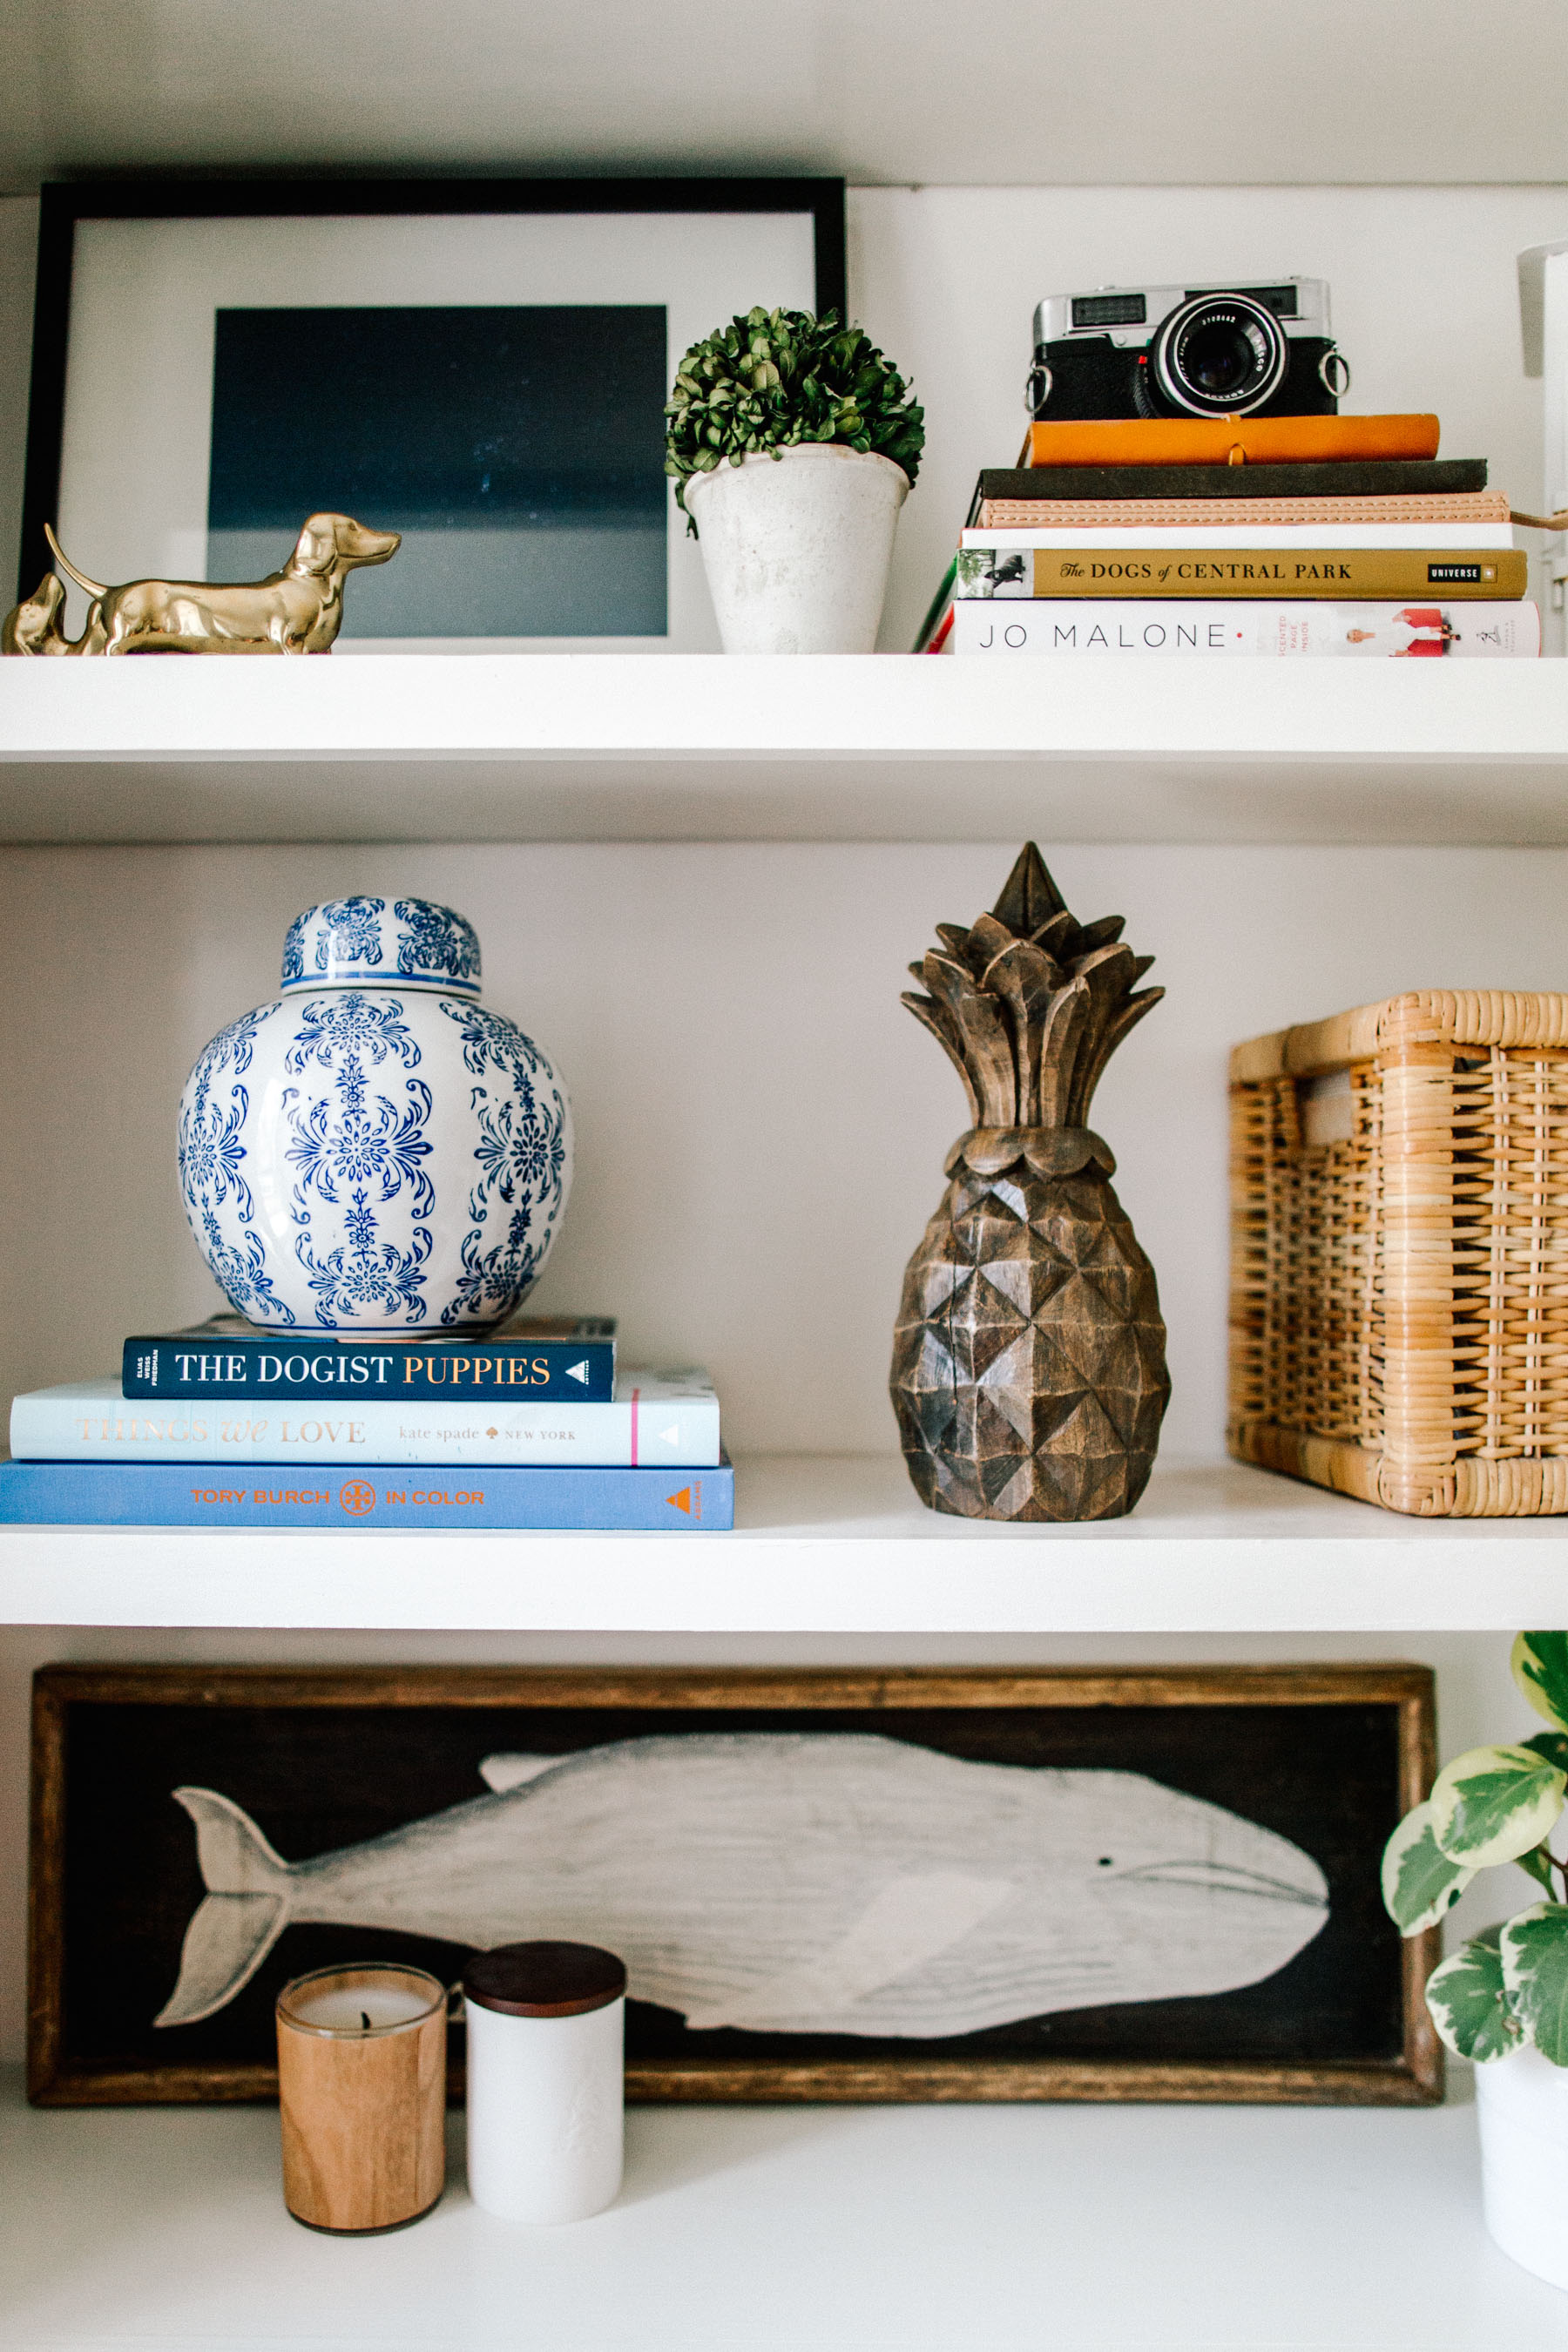 How to Decorate Bookshelves - Kelly in the City